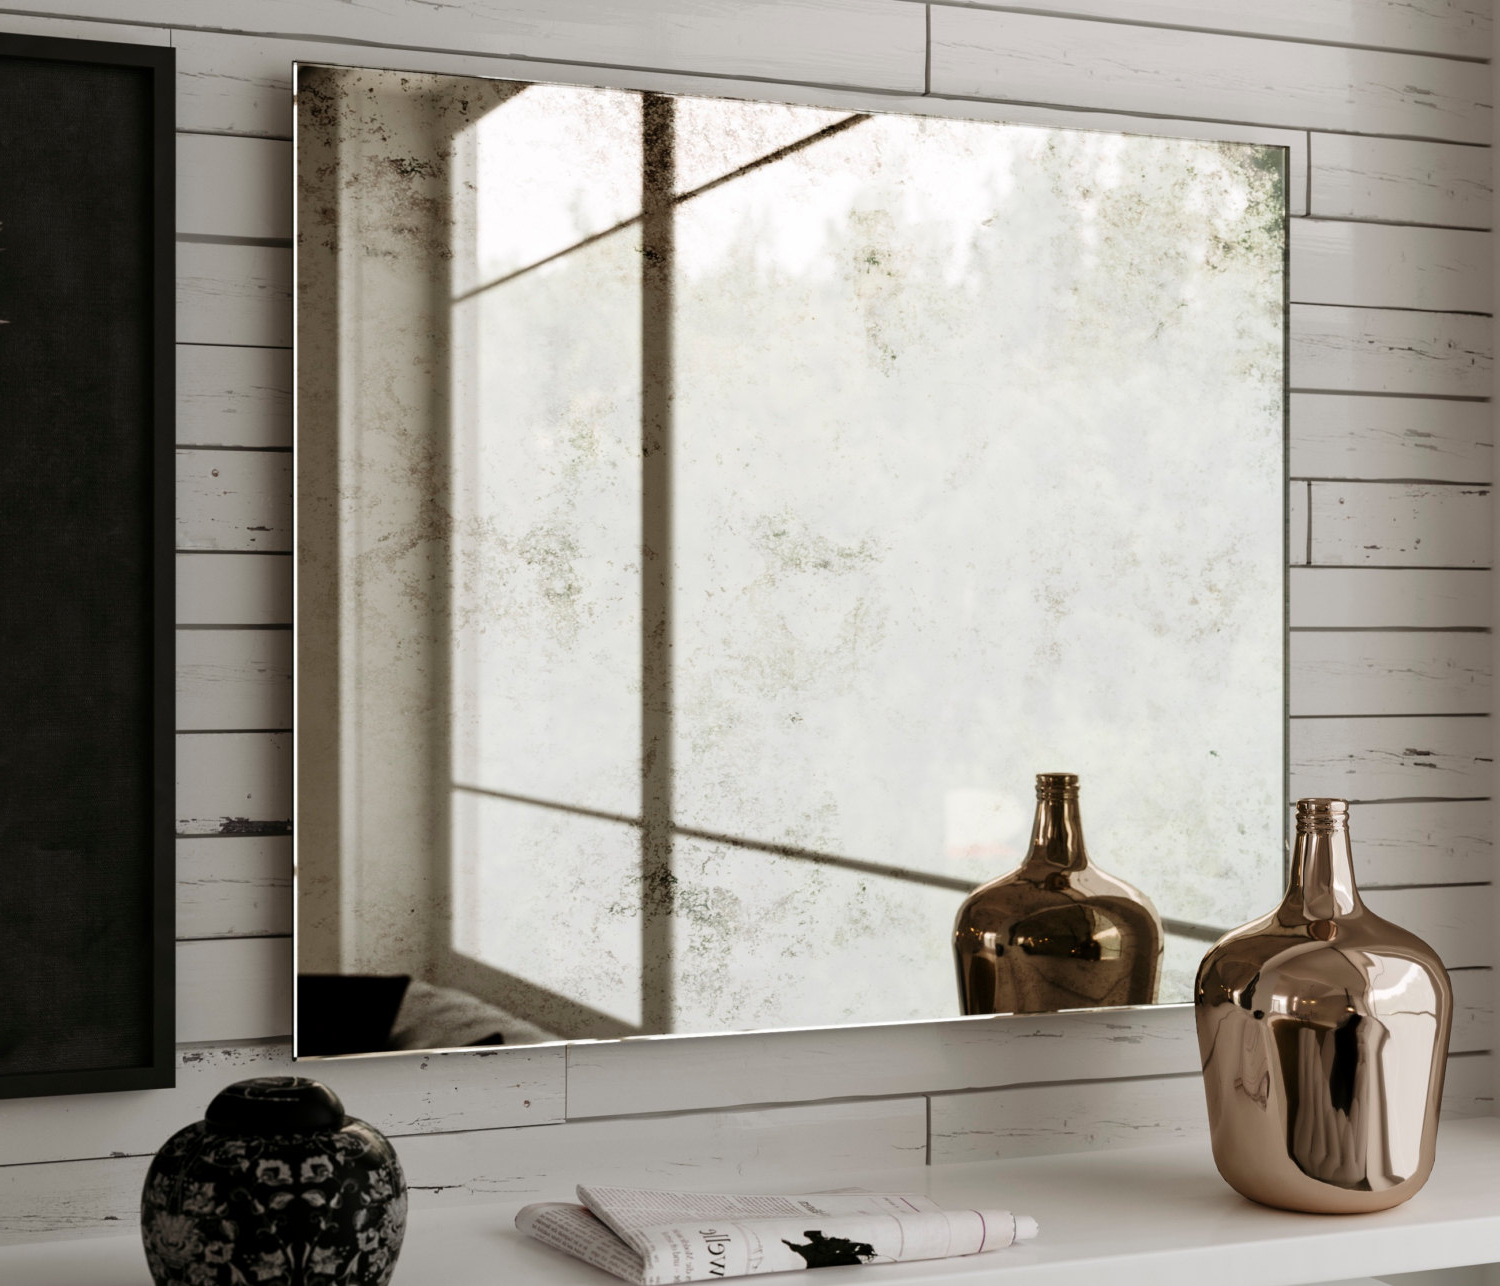 "Most Current Large Frameless Wall Mirrors Intended For 18 X 33"" Hanging, Large Frameless Antiqued Wall Mirror With European Pattern. 1940s And 1950s Style Hanging Mirror (View 9 of 20)"